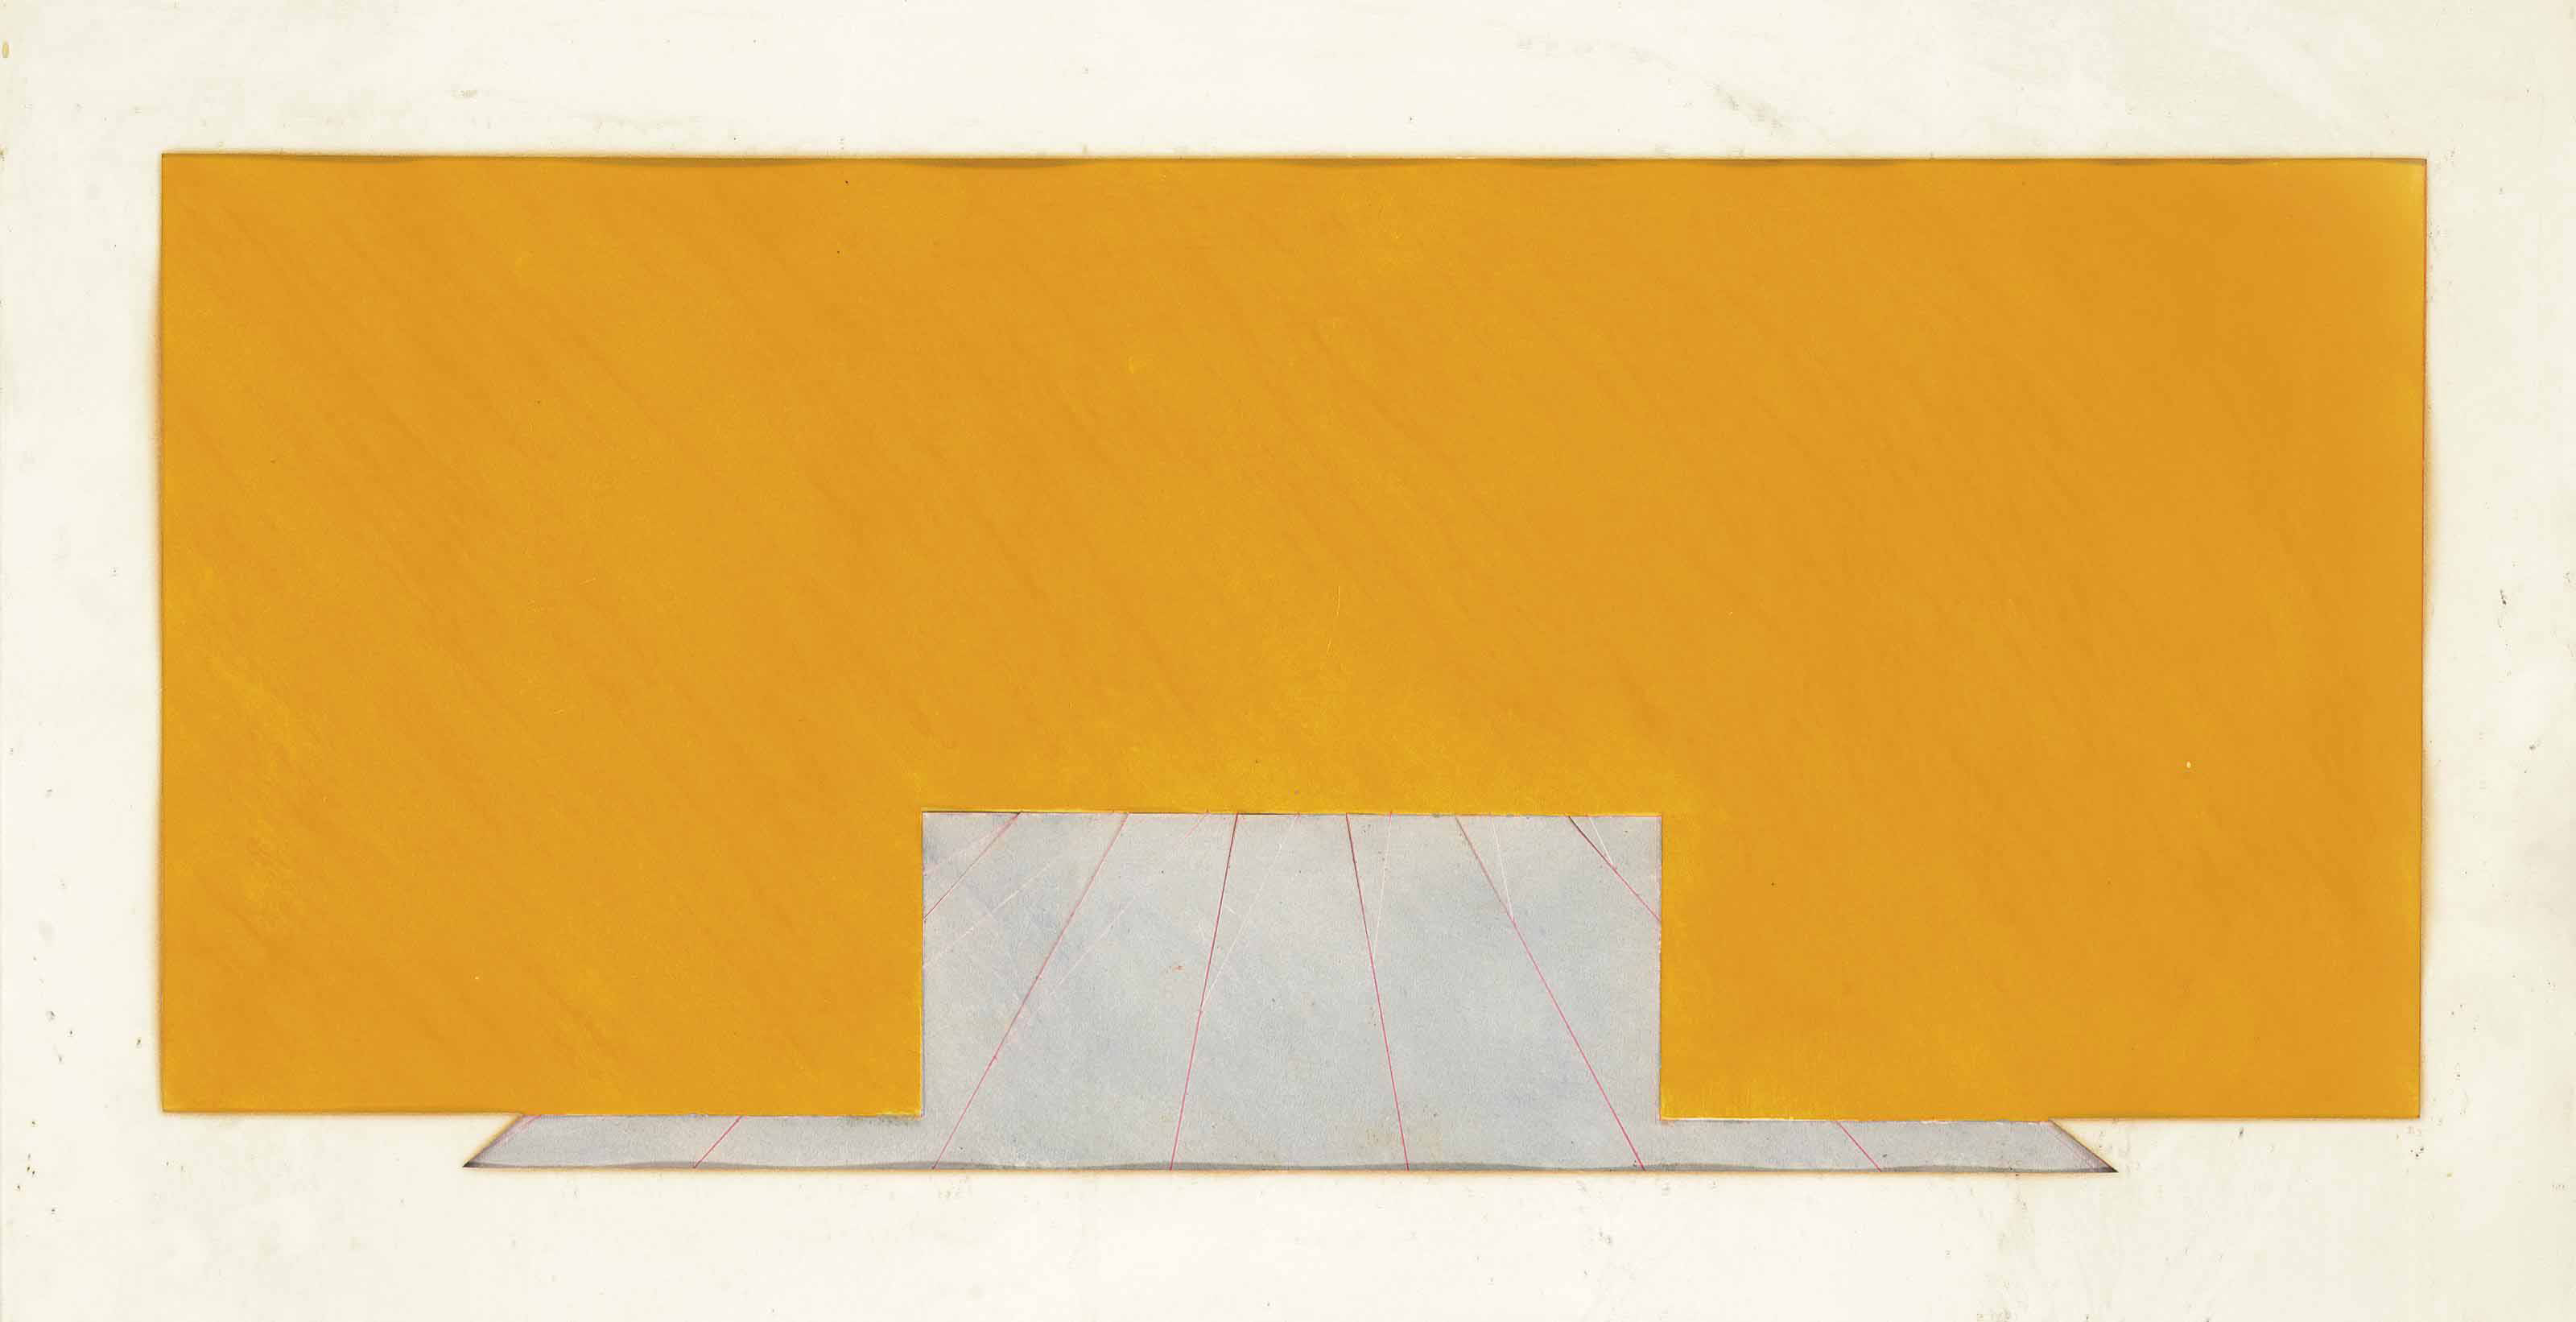 Untitled (Yellow and Grey)